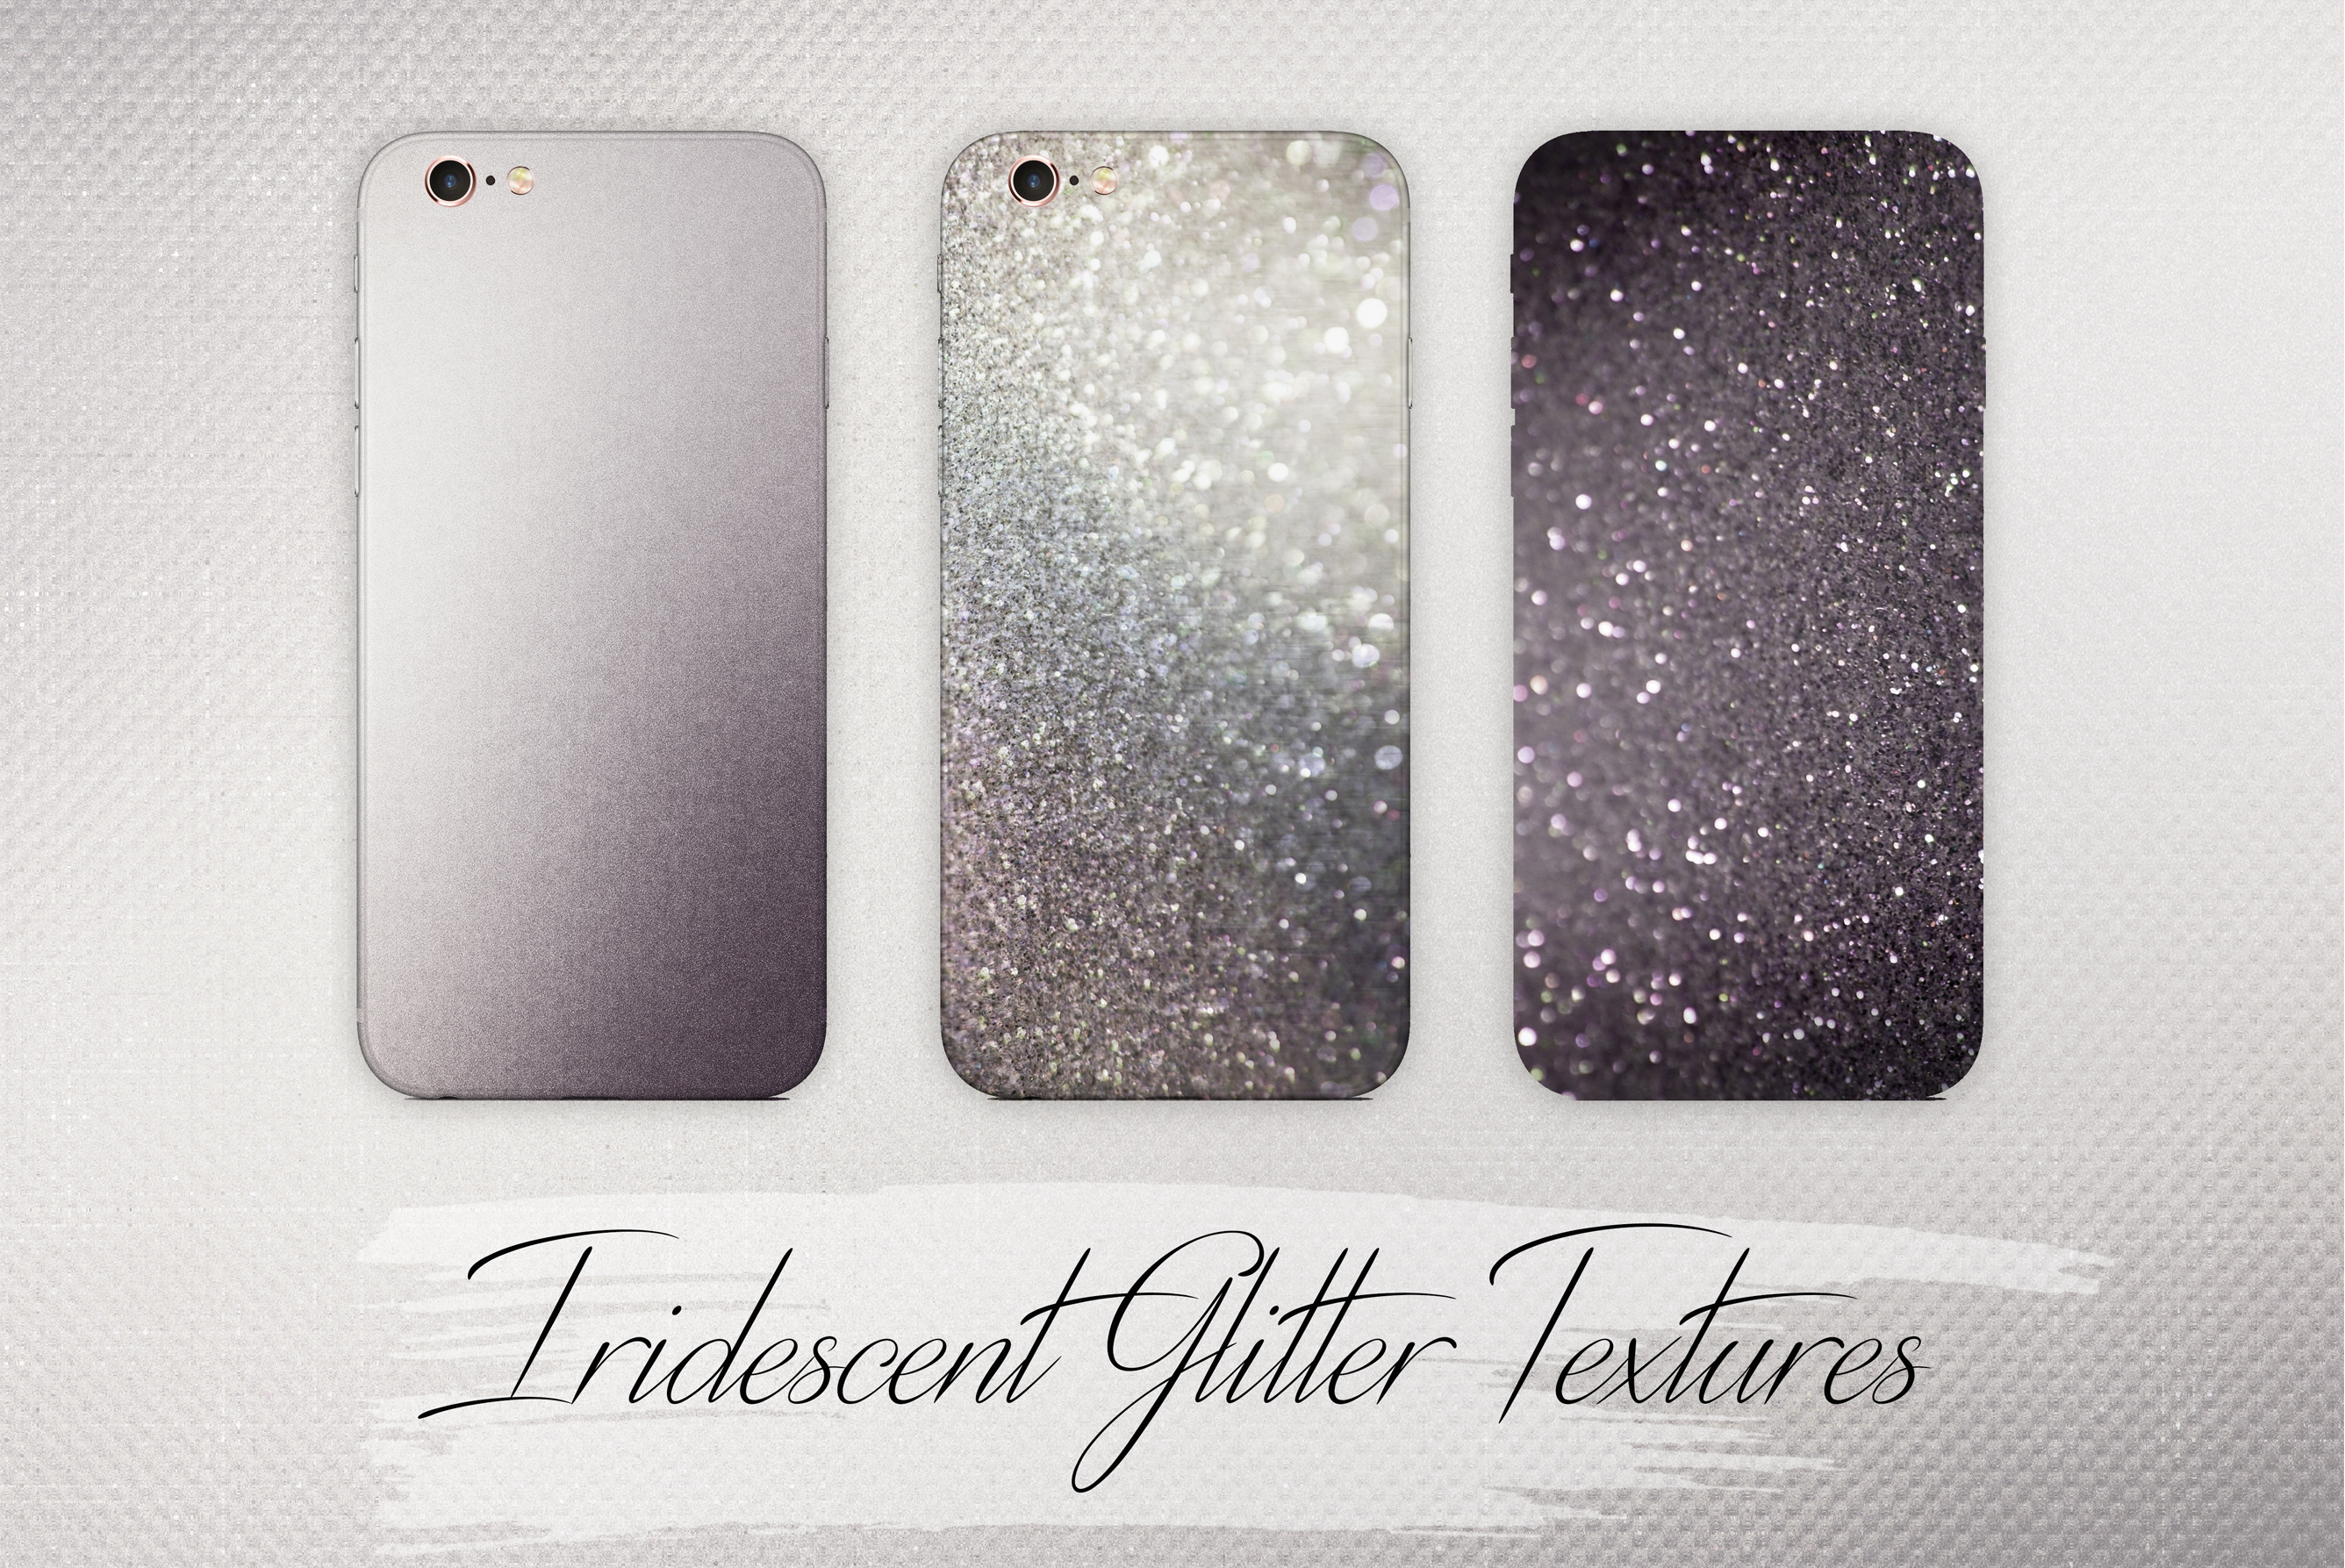 Iridescent and Glitter Foil Textures example image 4